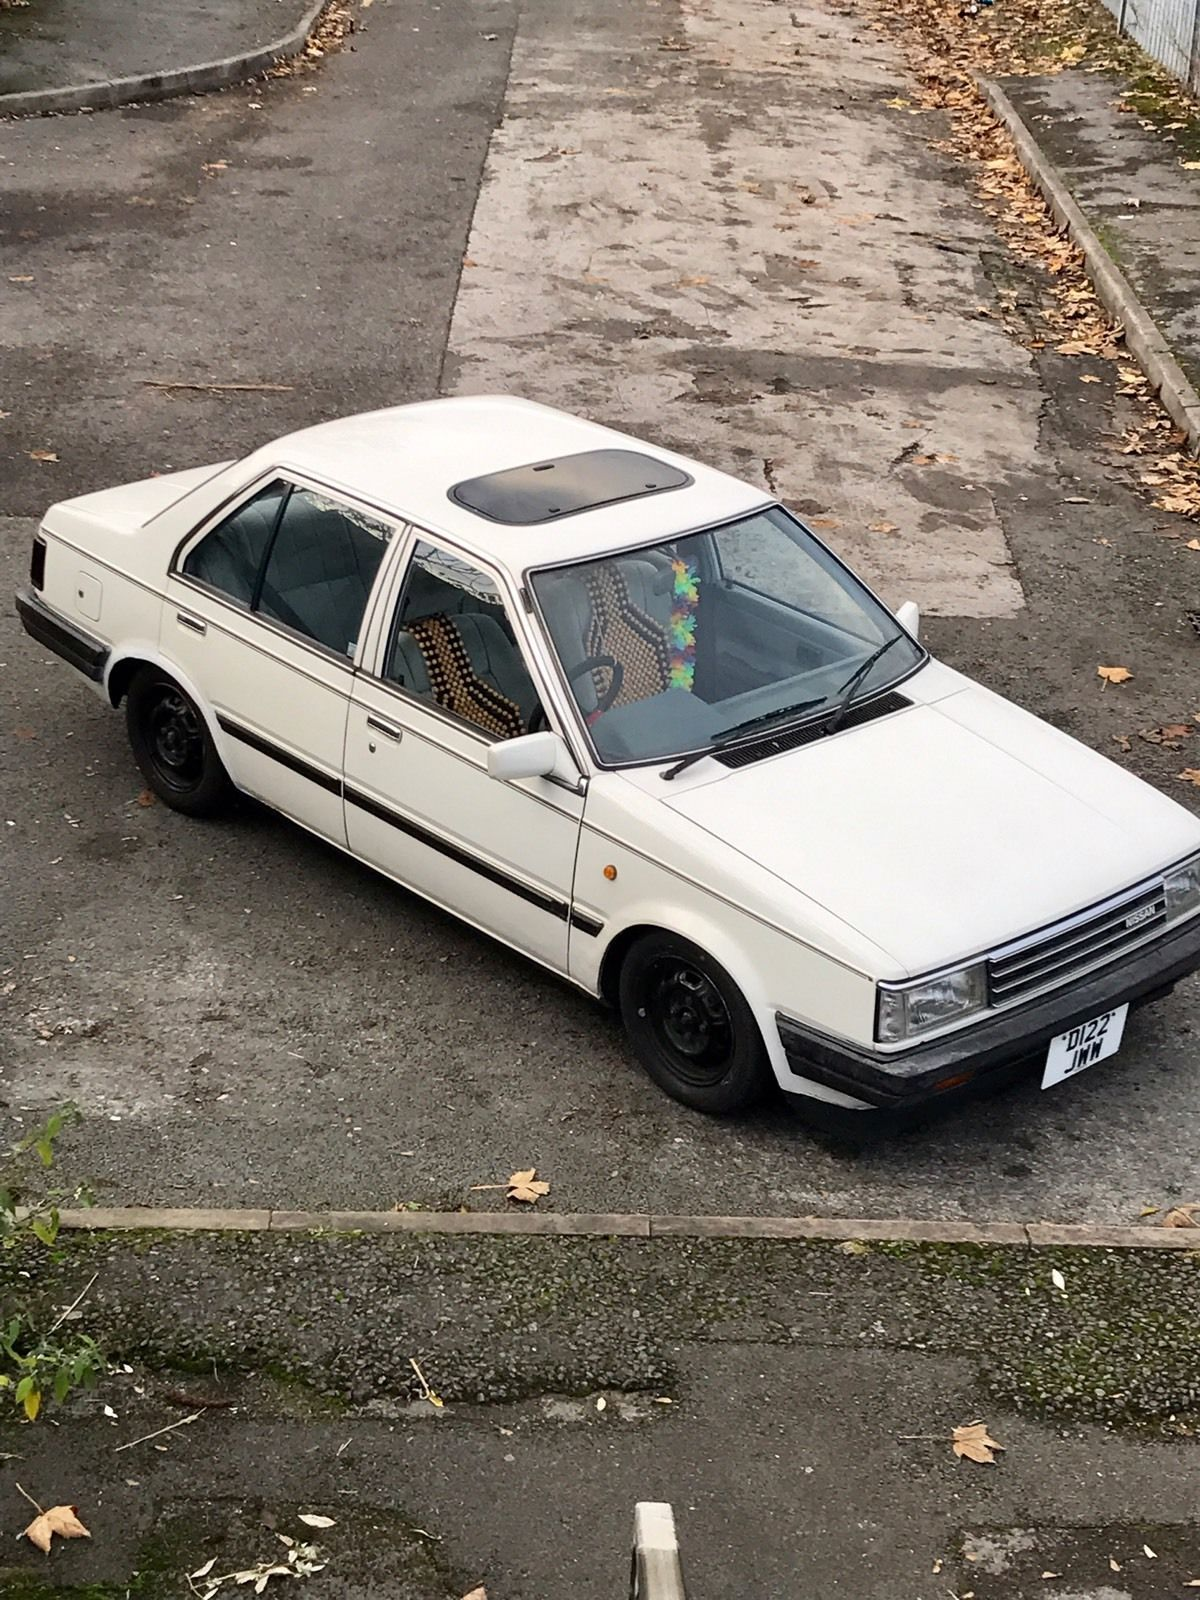 B11 Nissan Sunny Spirit 1.5 sgl Retro Daily Classic Want Vw Golf ...